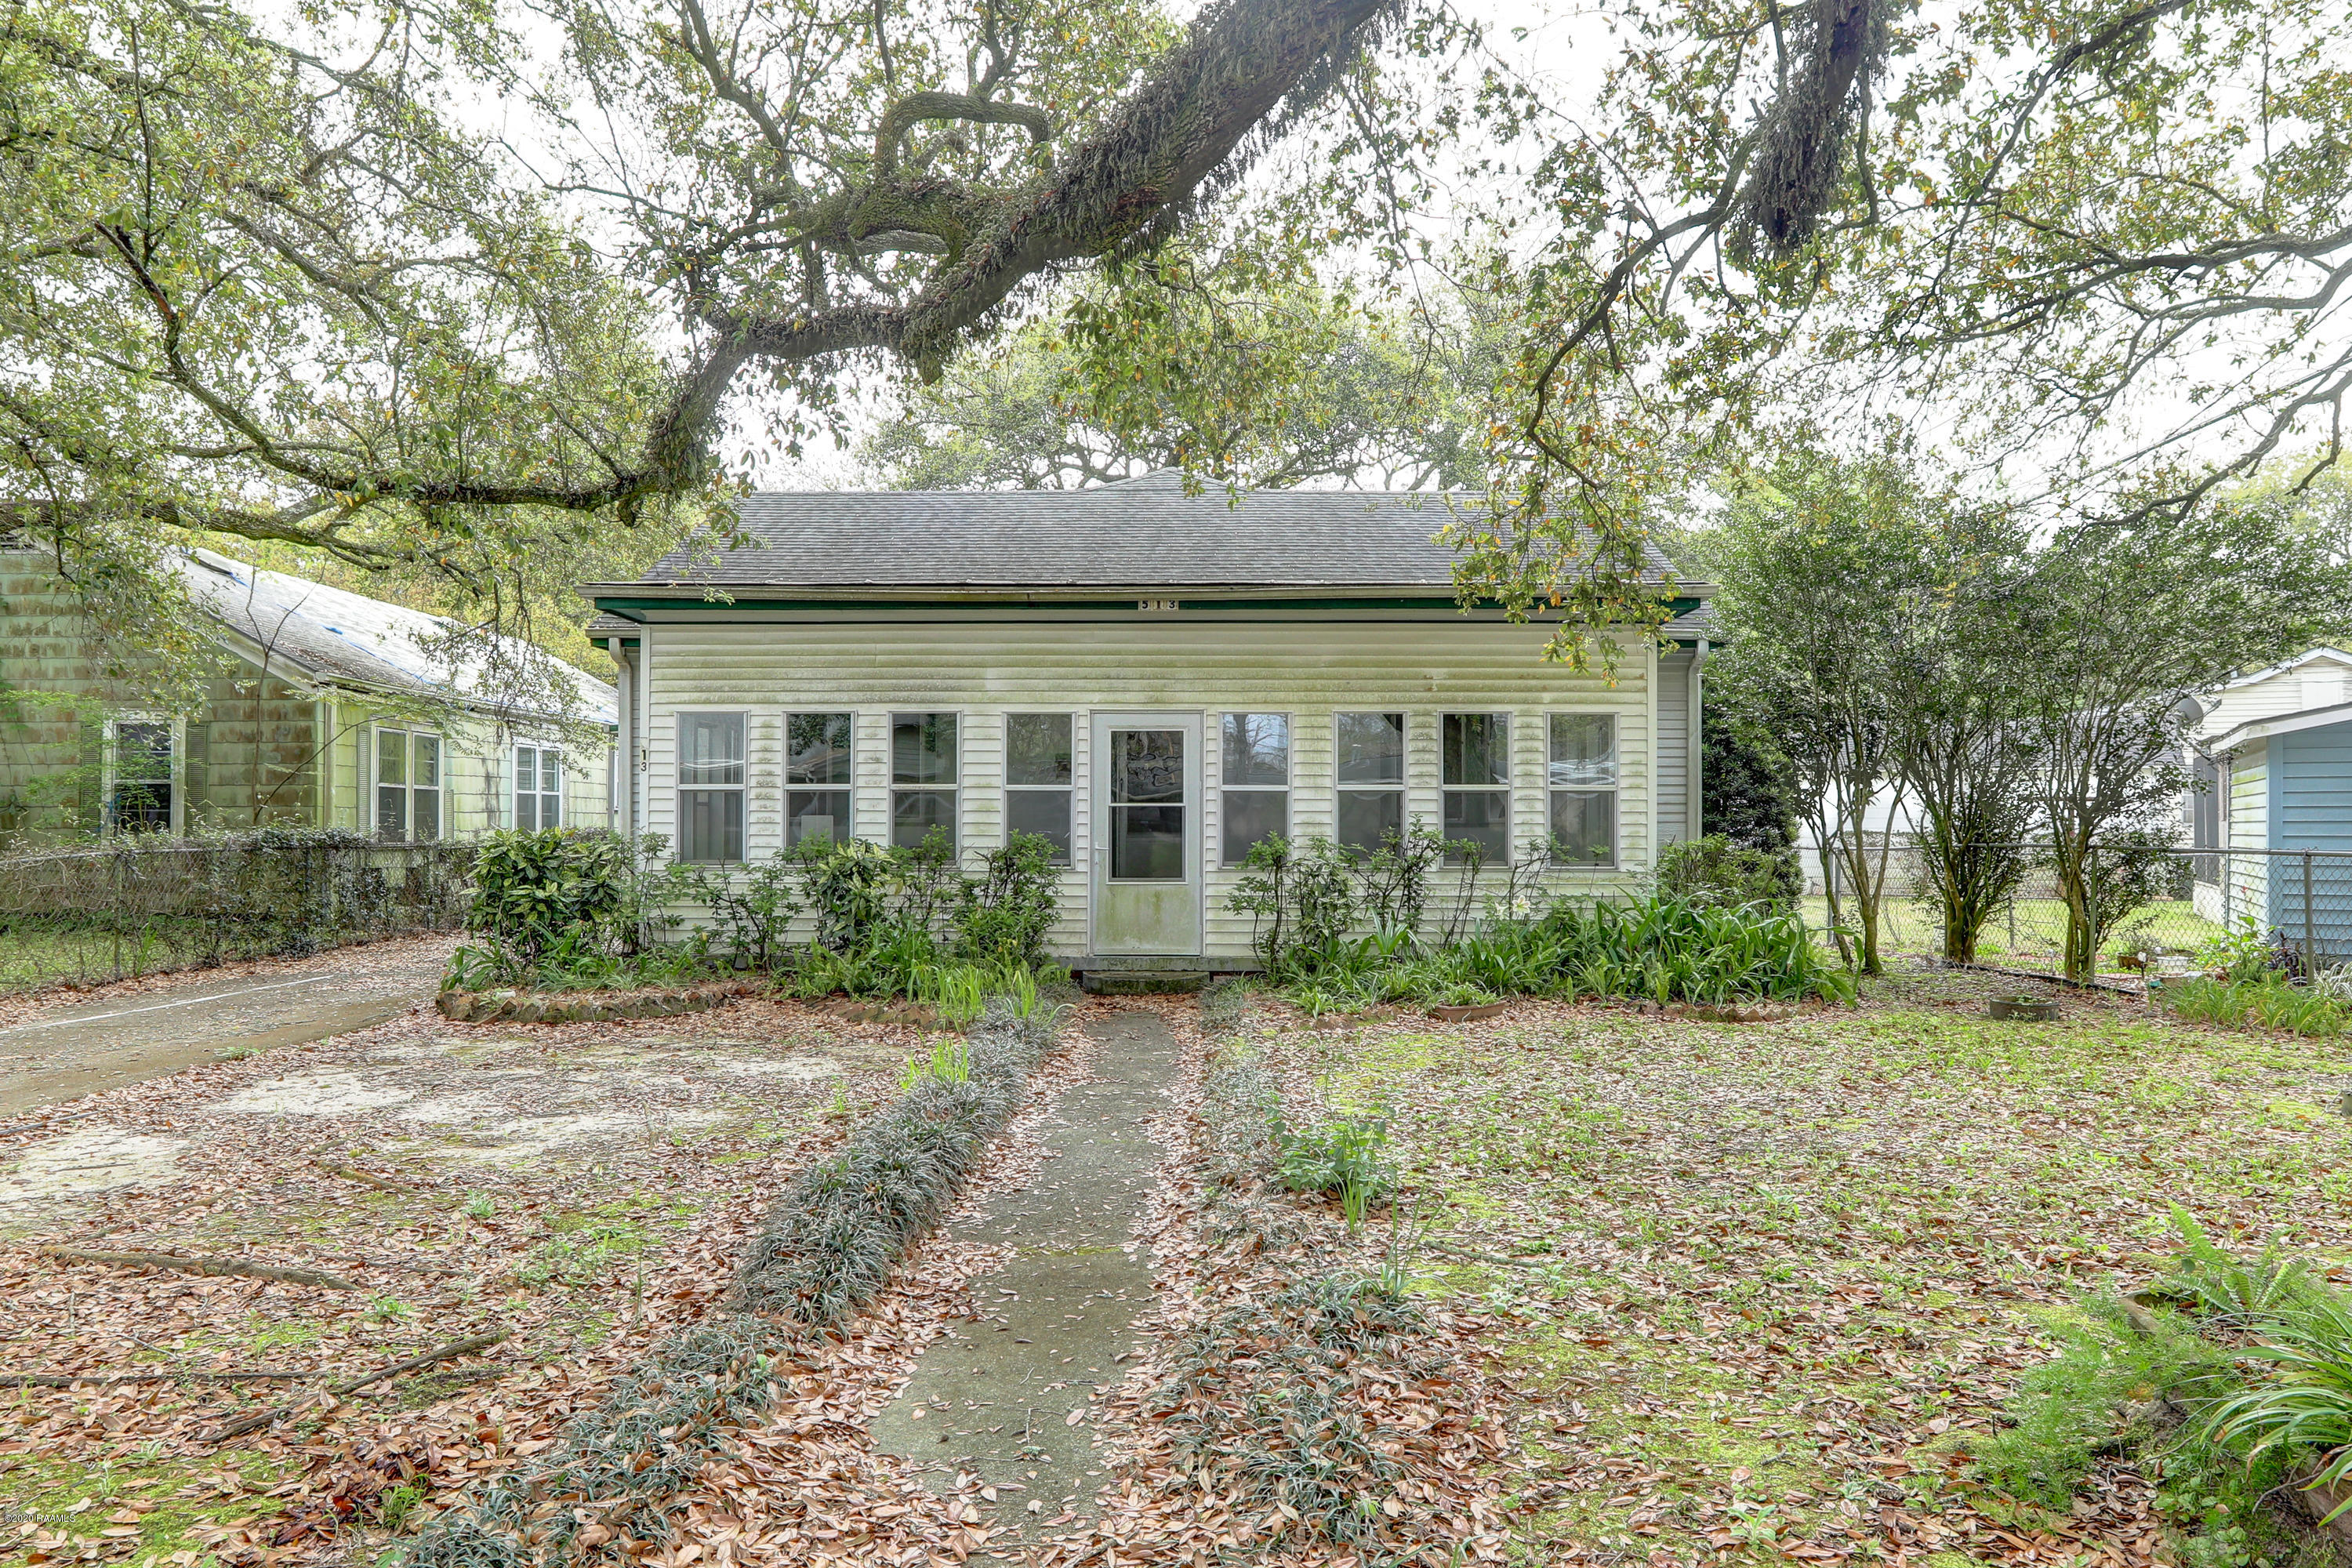 513 Broussard Street, New Iberia, LA 70560 Photo #1